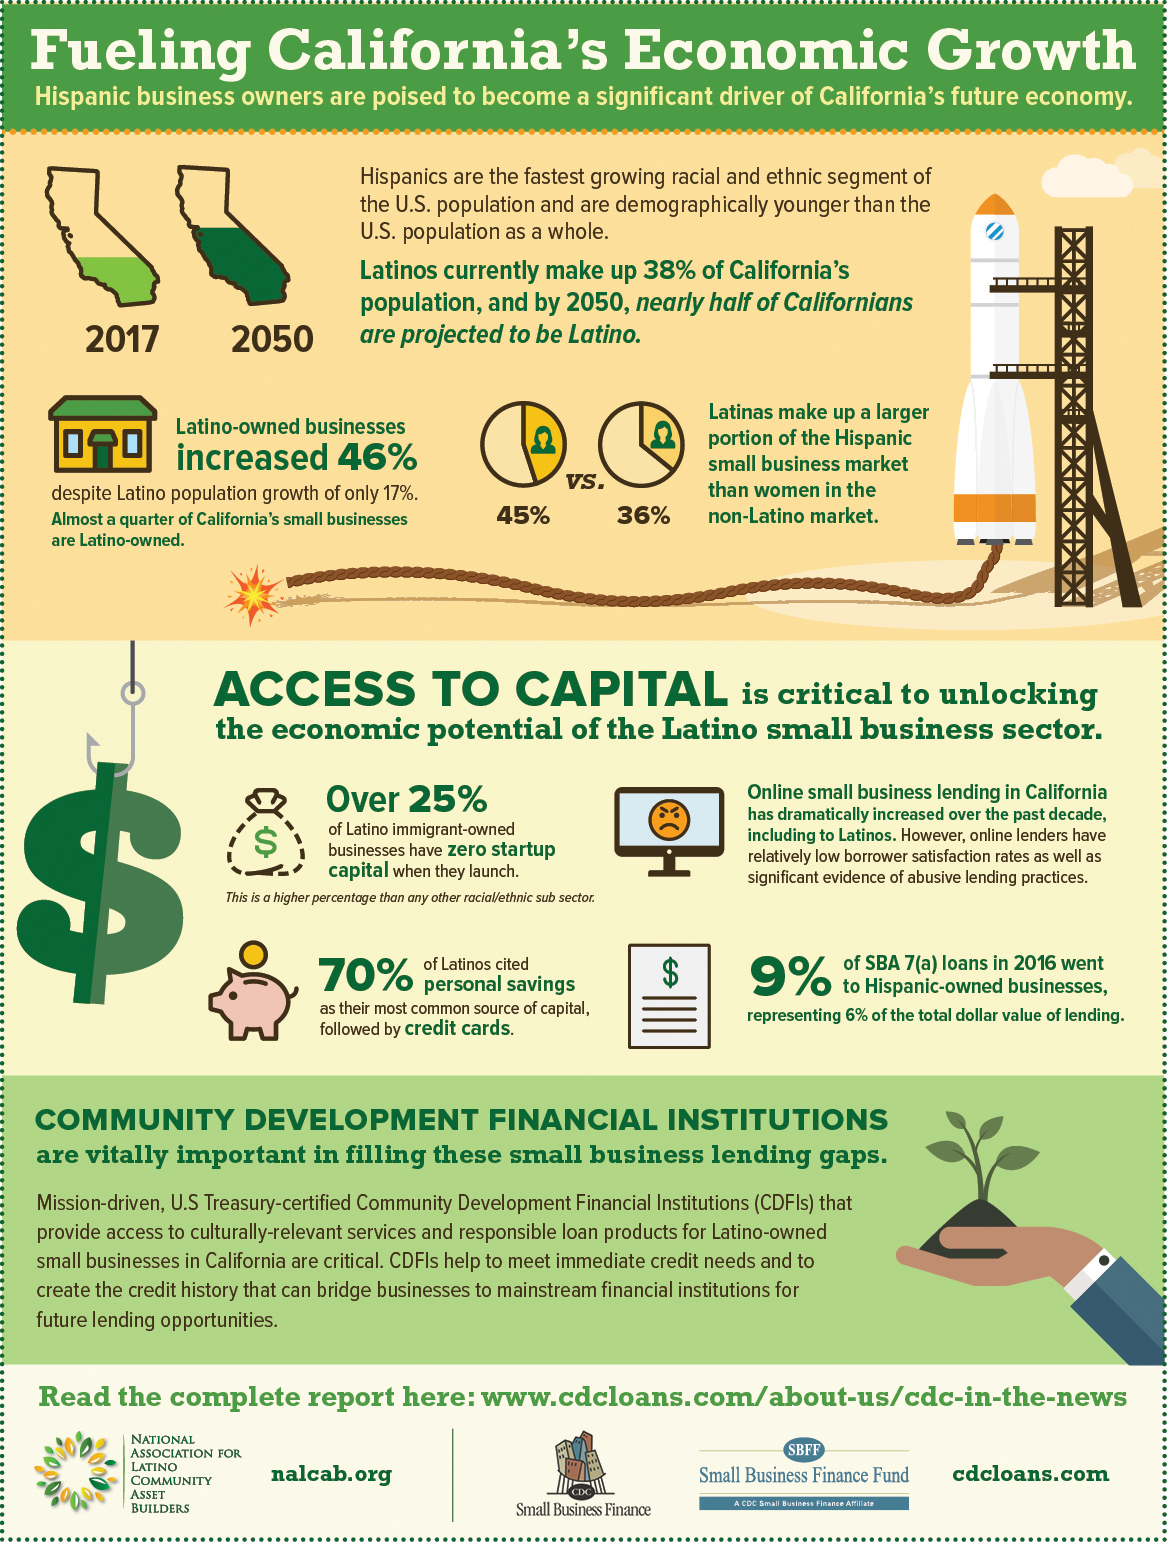 Fueling California's Economic Growth Infographic